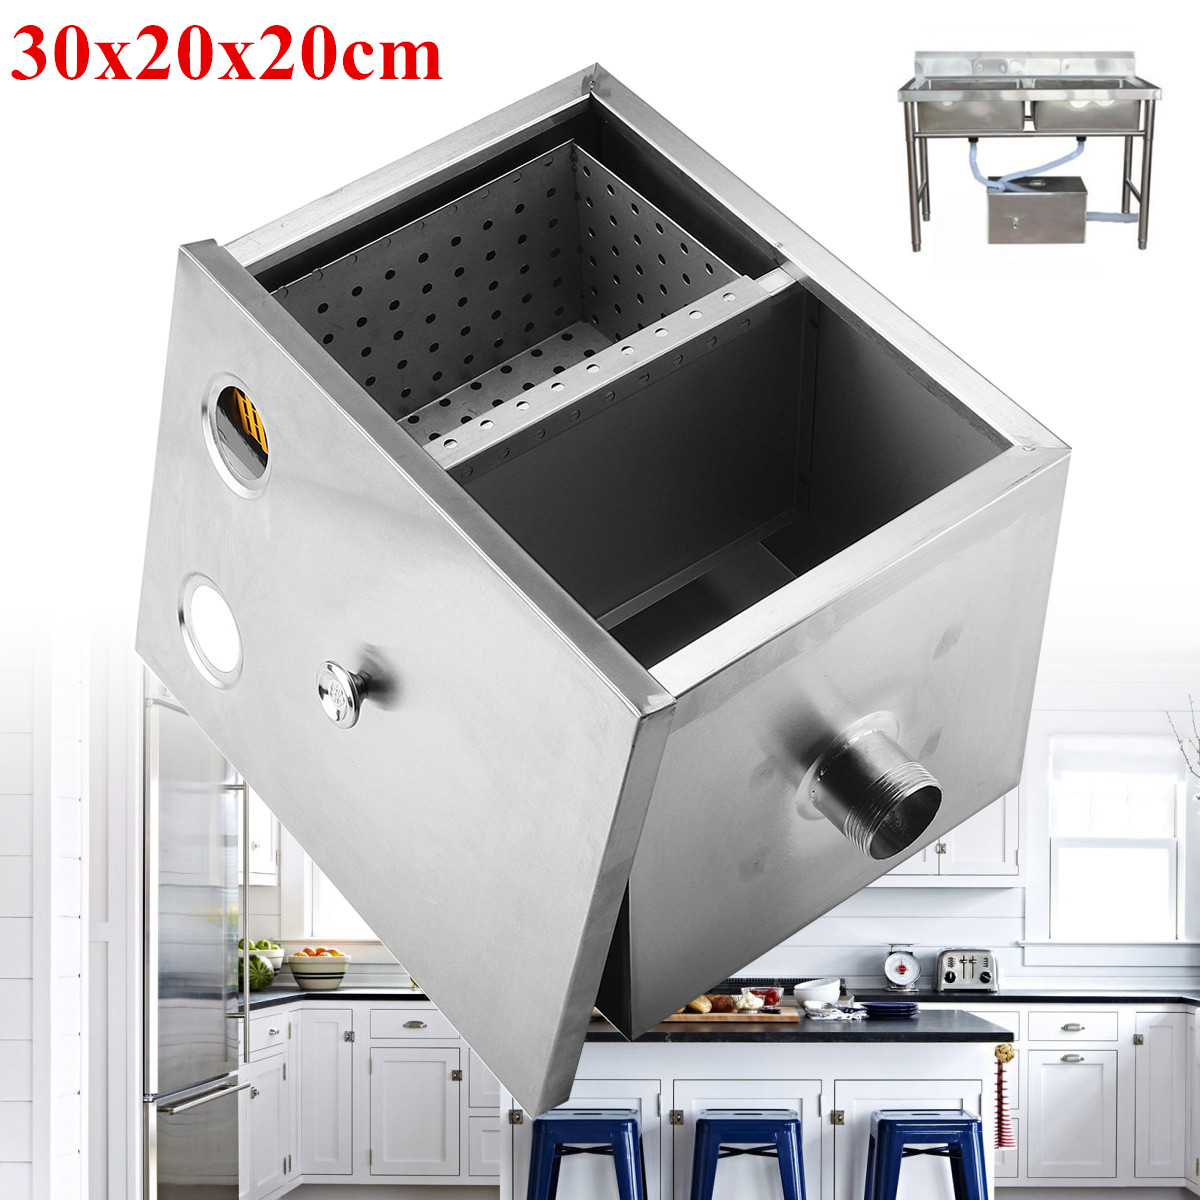 Commercial Grease Trap Interceptor 5GPM Gallon Per Minute Stainless Steel Removable  Filter Set for Restaurant Kitchen Wastewater